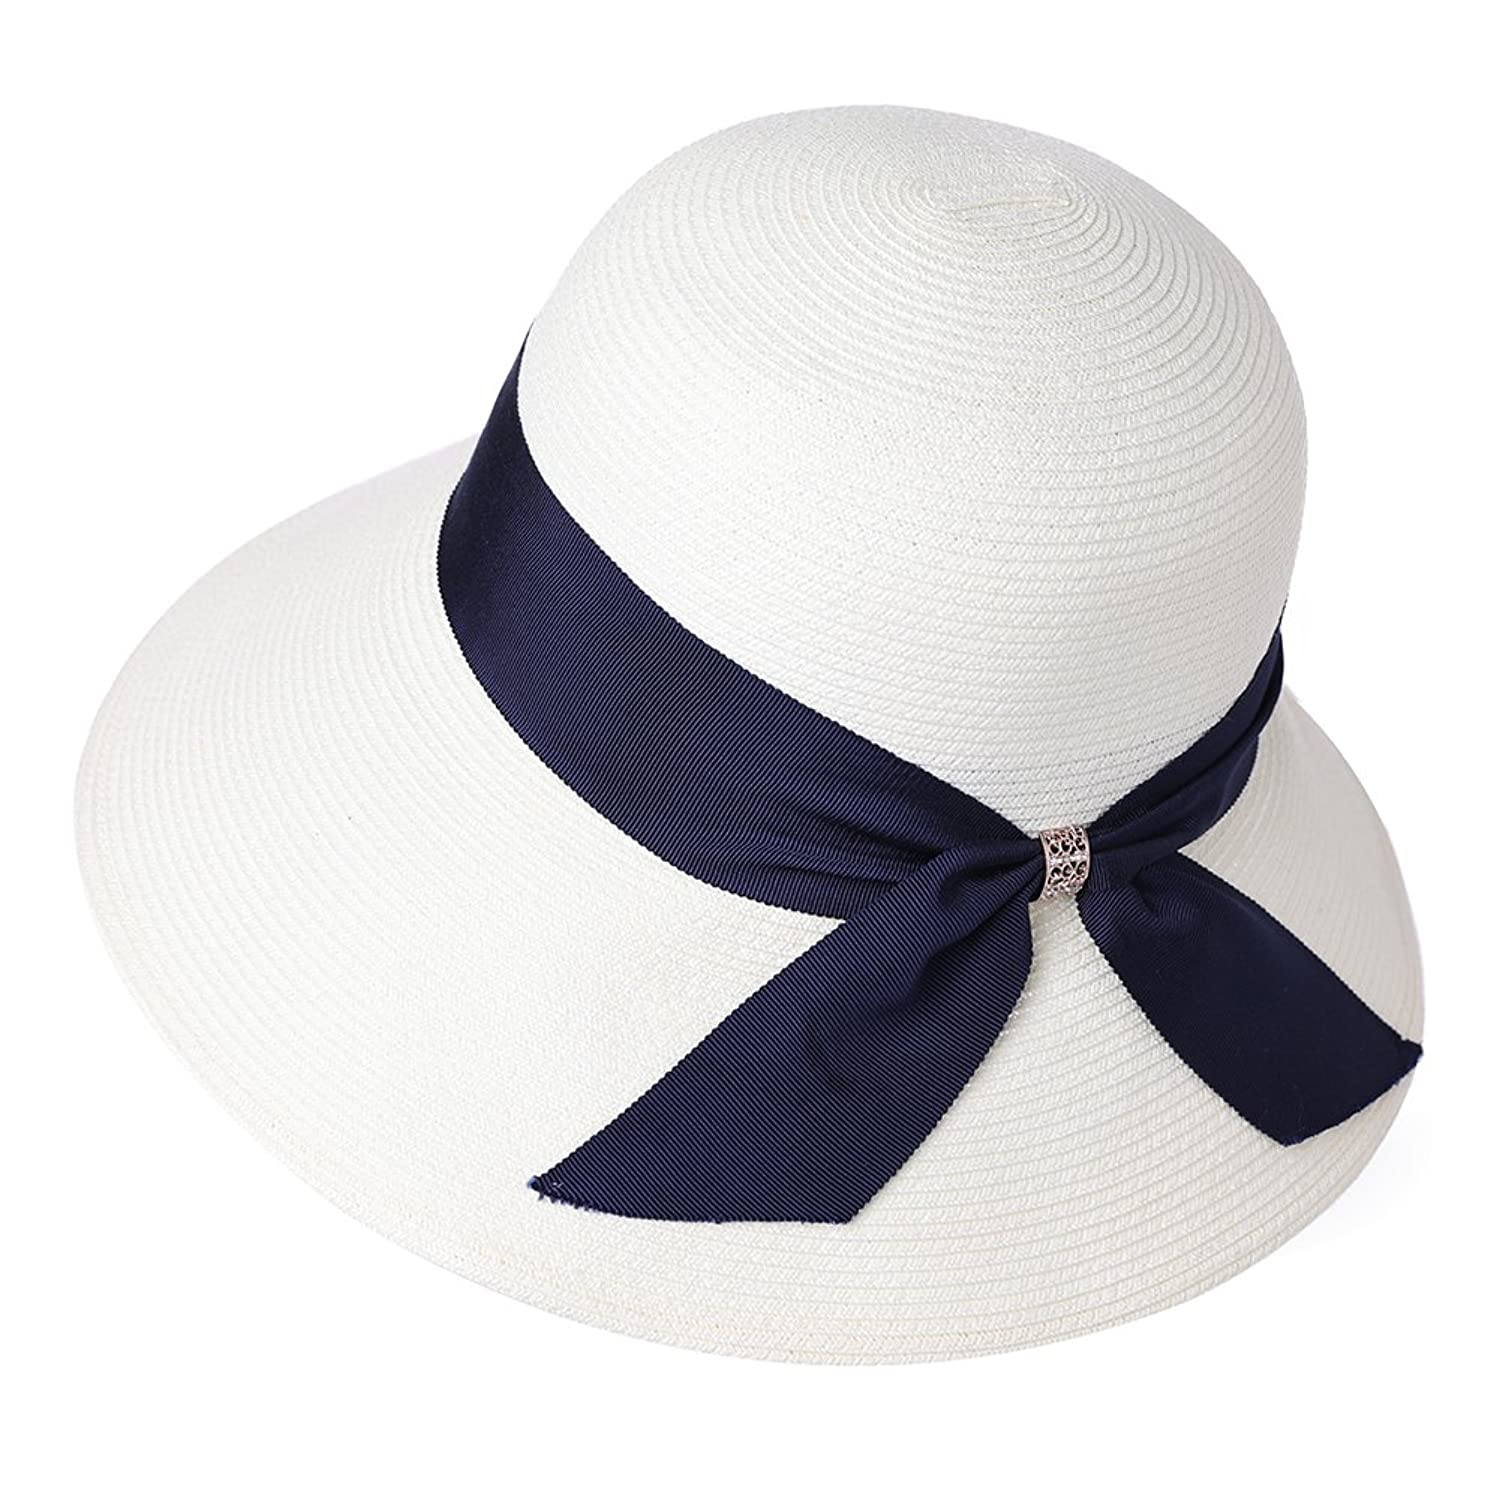 ade630fe2a6dac 1930s Style Hats | Buy 30s Ladies Hats SiggiHat Packable UPF Straw Sunhat  Women Summer Beach